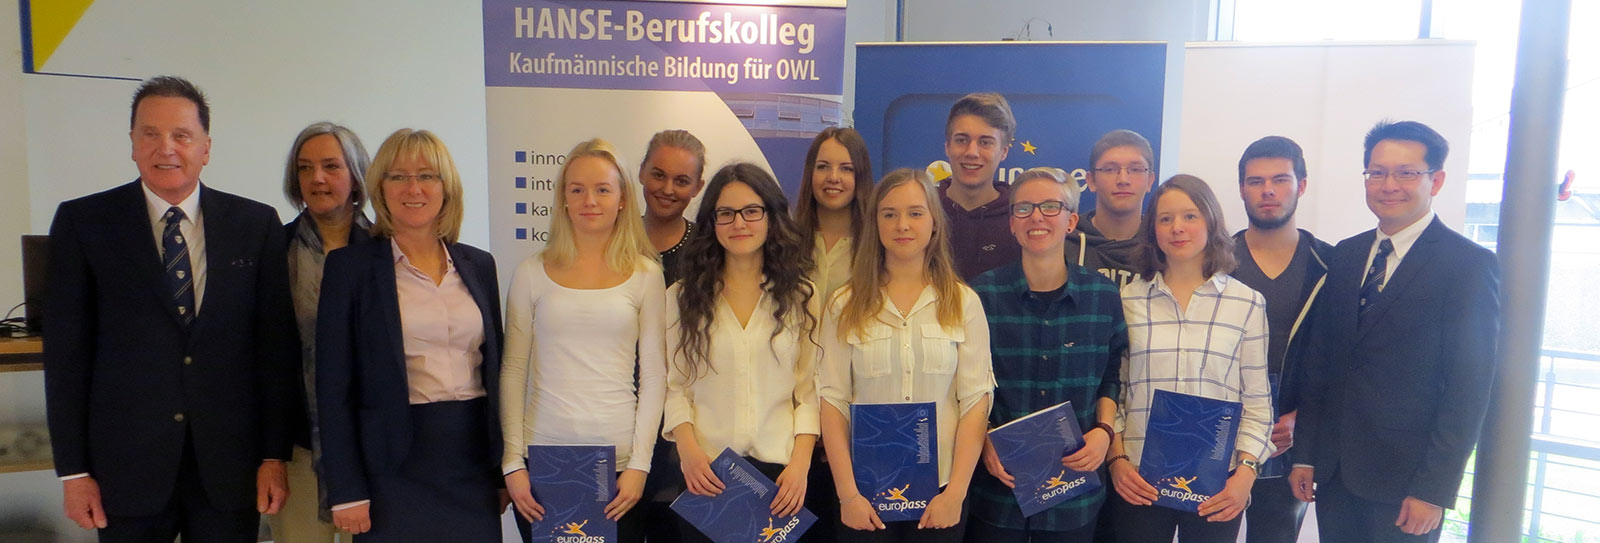 Posing with the Warnborough interns at Hanse Berufskolleg